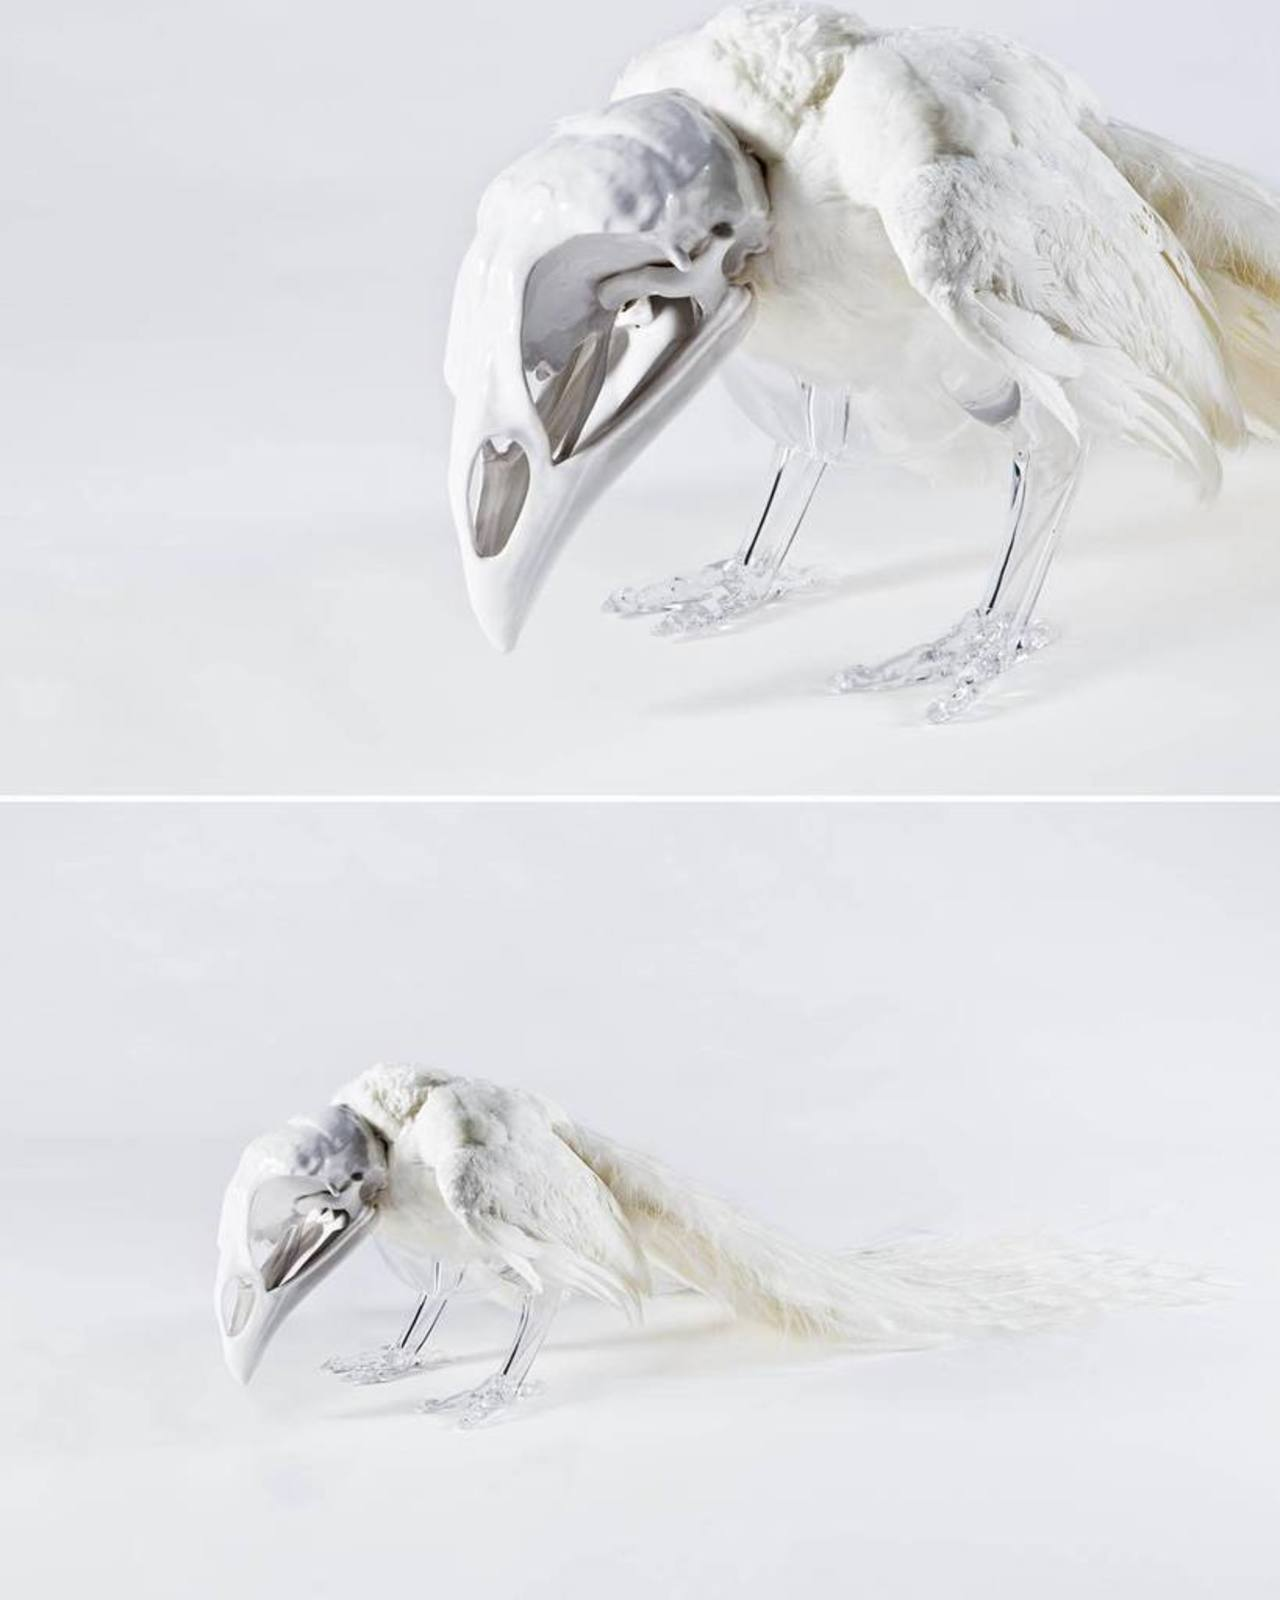 White #peacock #art #artificialCrossbreeding #glass #ceramics #taxidermy http://ift.tt/1Ks5iuW http://t.co/60zTGBYglz